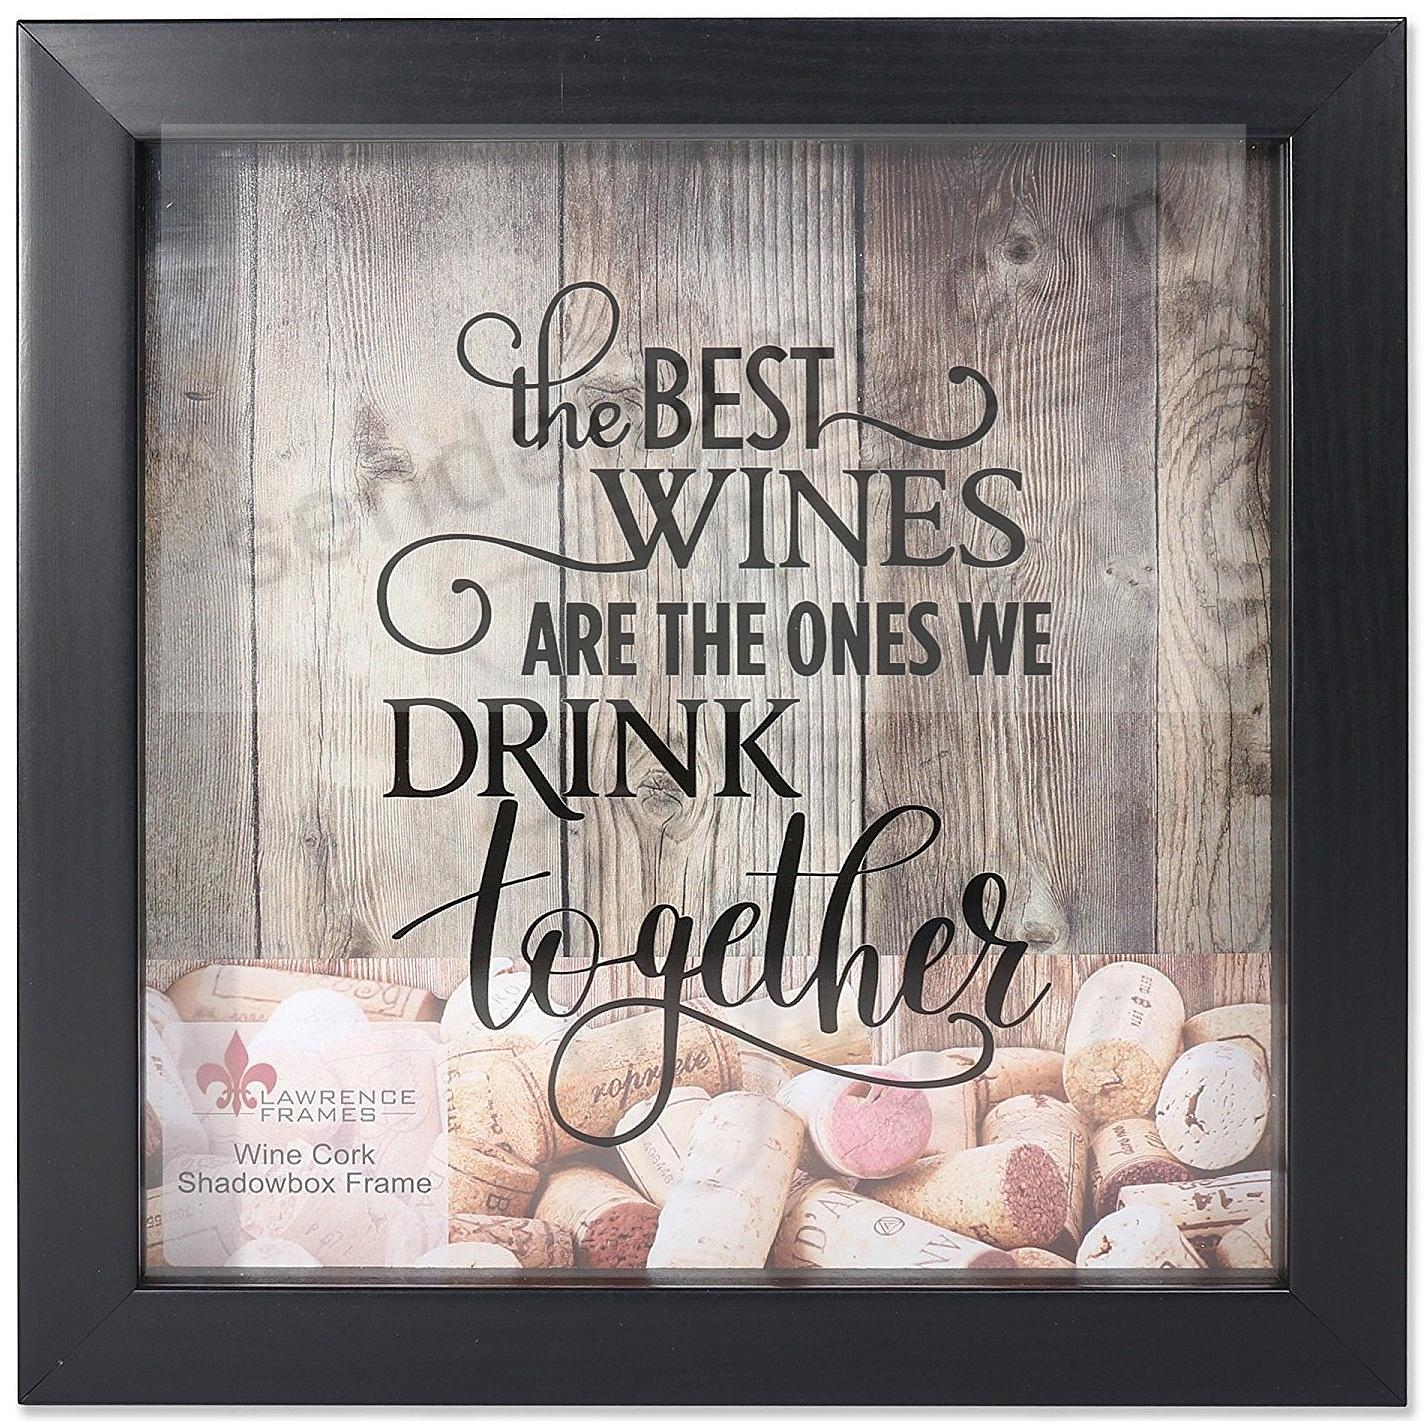 WINE CORK HOLDER Black ShadowBox 10x10 frame by Lawrence®